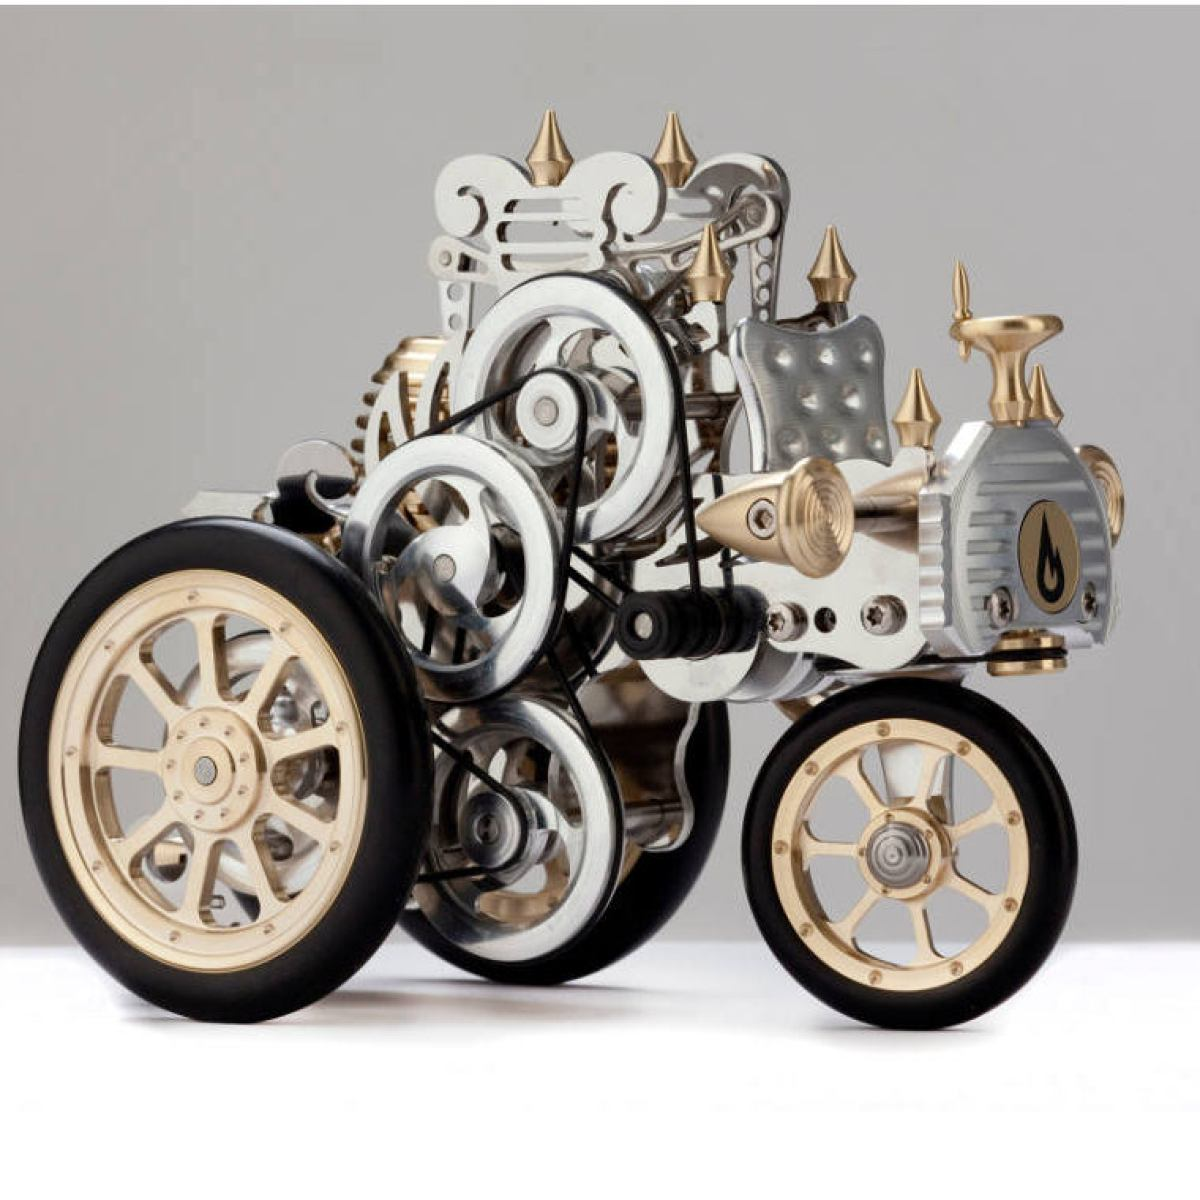 Model car with Stirling engine, inspired by Carl Benz